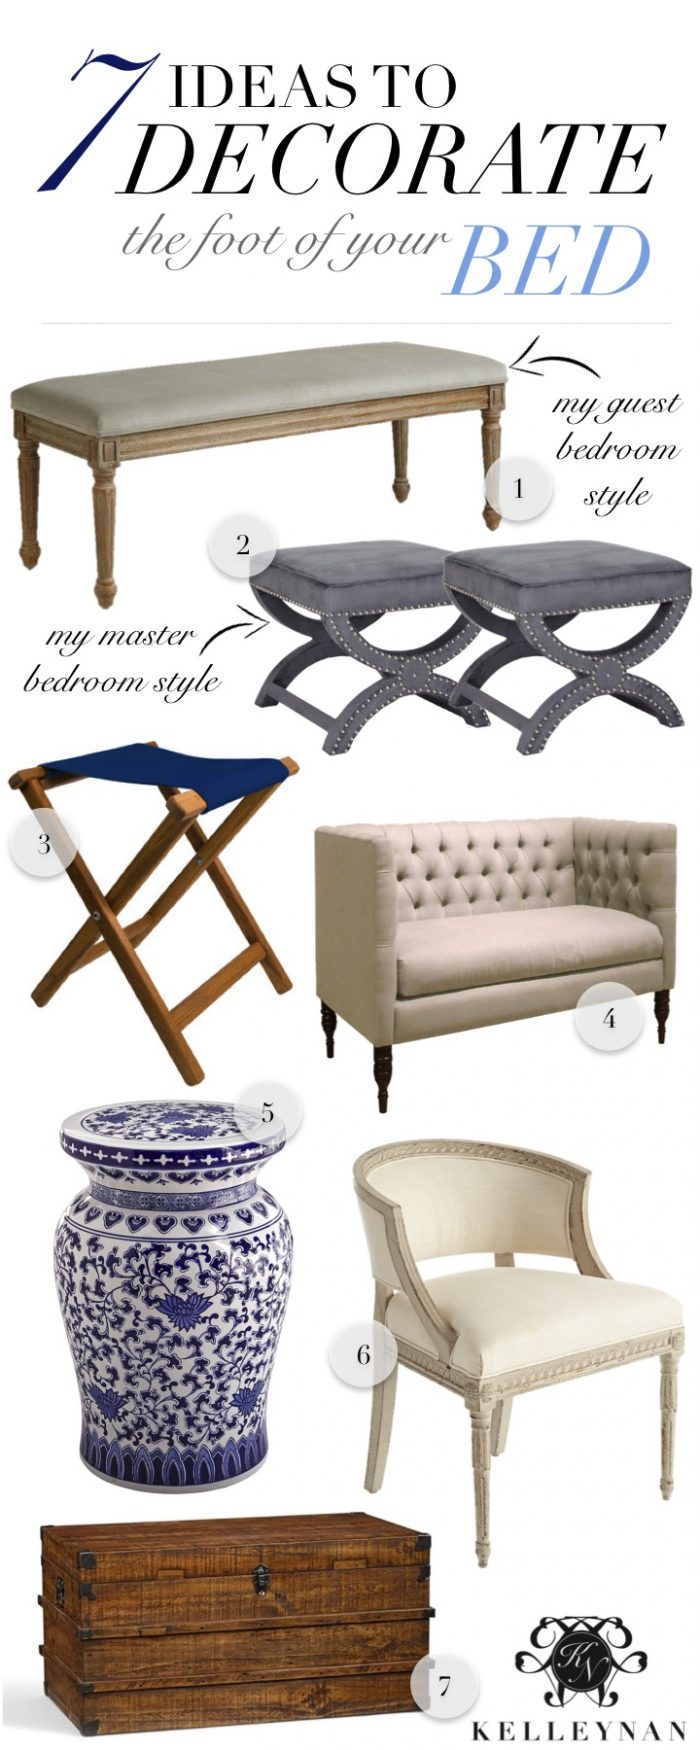 Foot Of The Bed seven ideas to decorate the foot of your bed | kelley nan